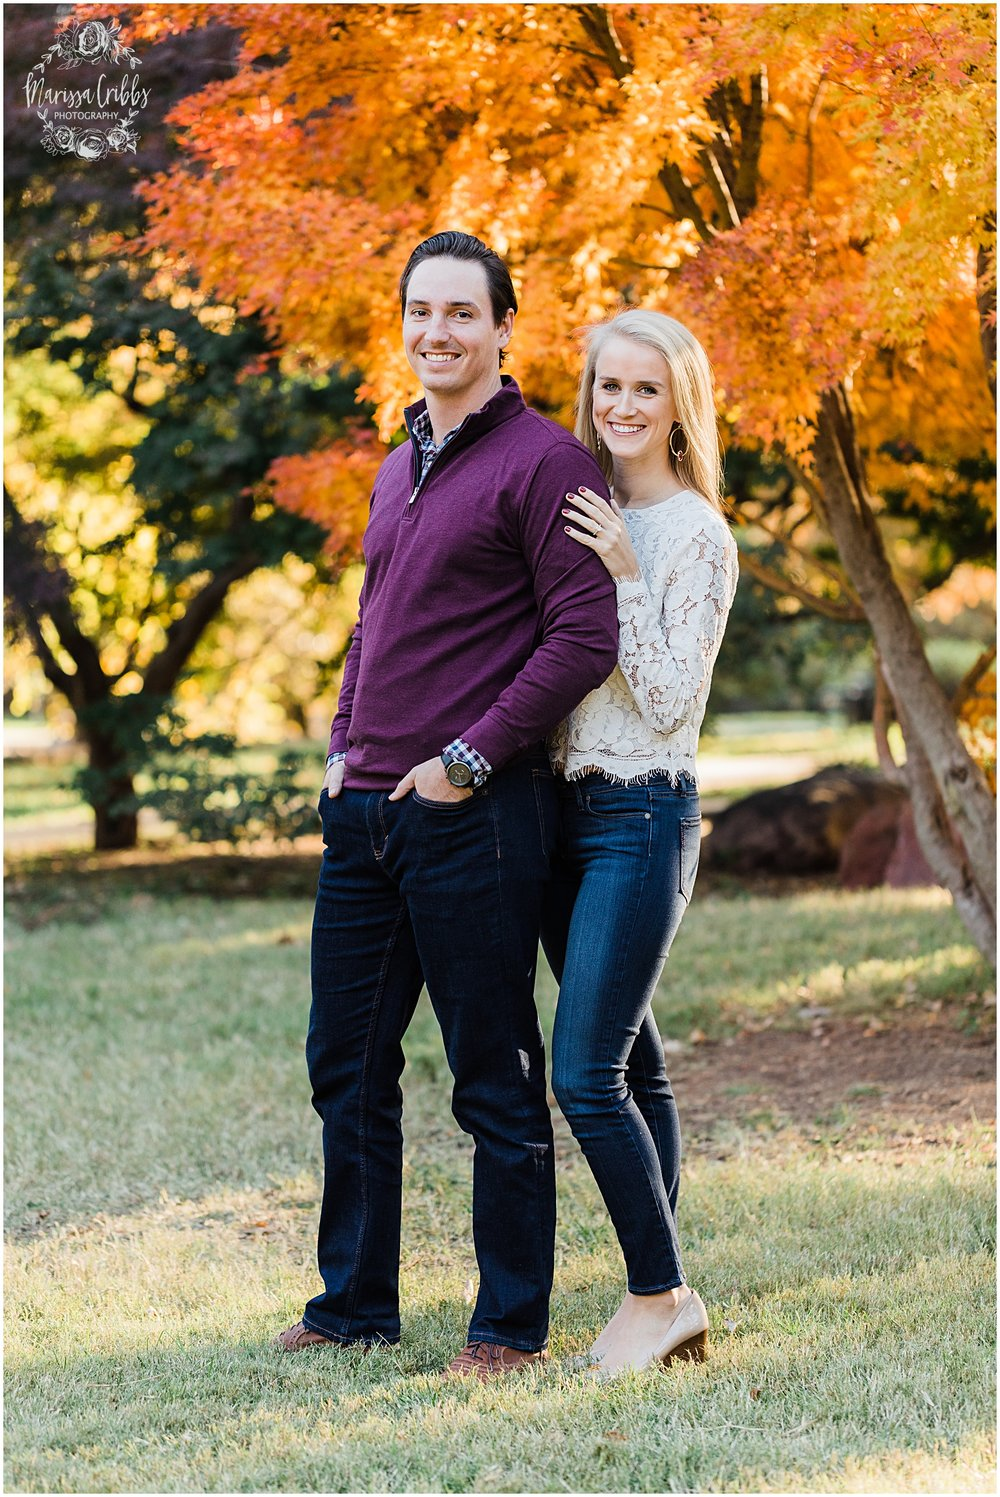 HALEY & CHASE ENGAGED LOOSE PARK & NELSON ATKINS | FALL ENGAGEMENT PHOTOS | MARISSA CRIBBS PHOTOGRAPHY_6846.jpg